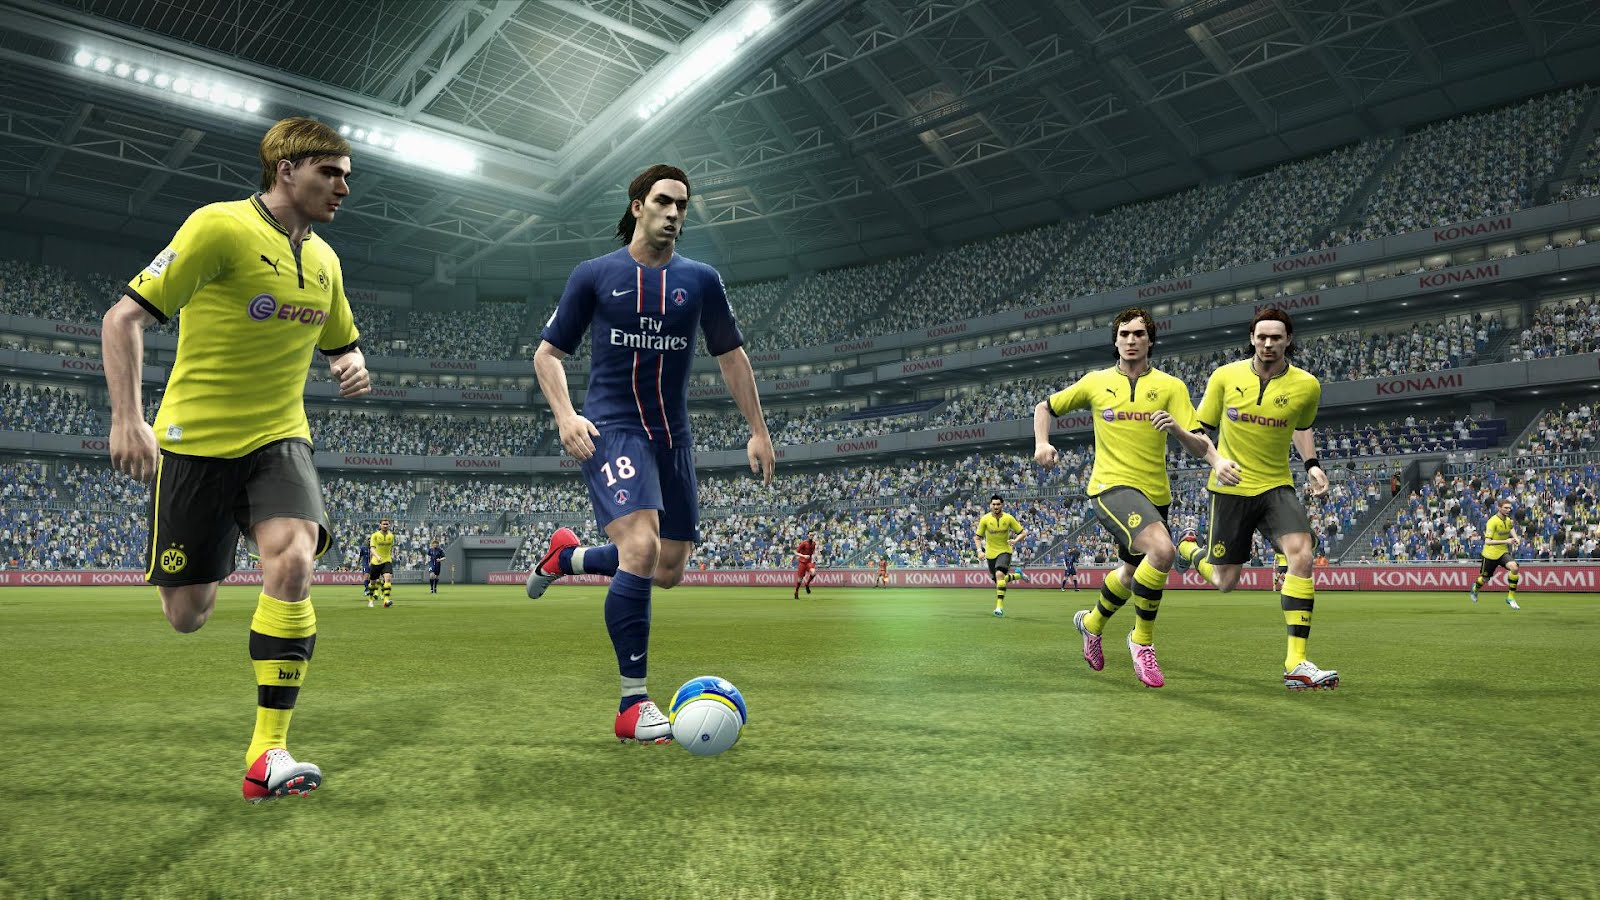 Pes 2013 Download Xbox 360 Portuguese